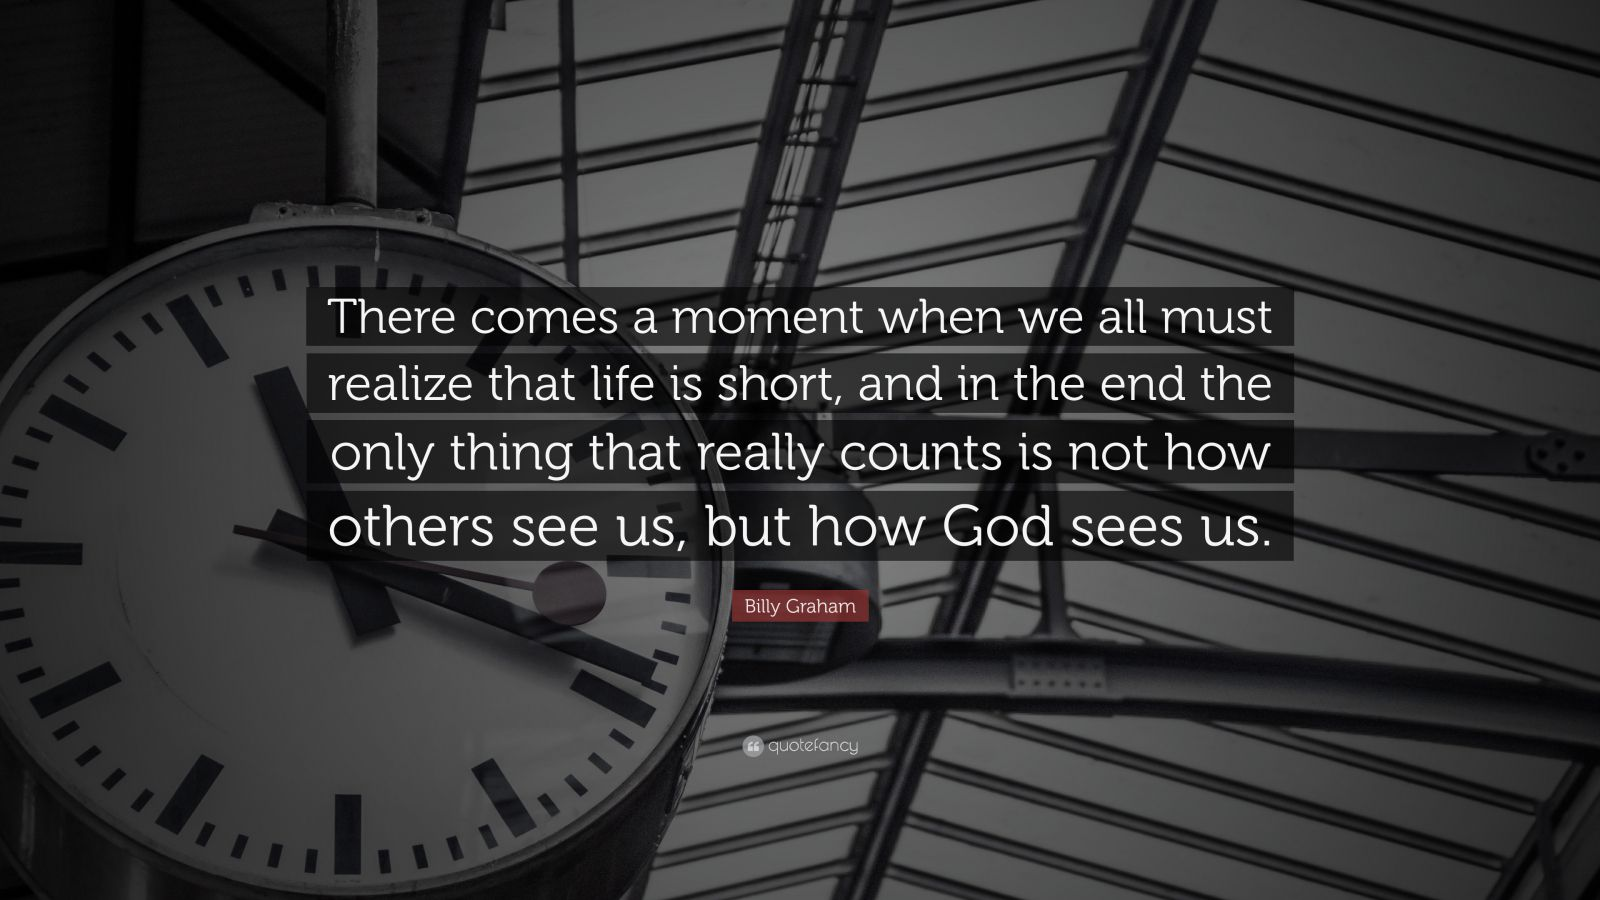 """Billy Graham Quote: """"There comes a moment when we all must realize that life is short, and in the end the only thing that really counts is not how others see us, but how God sees us."""""""